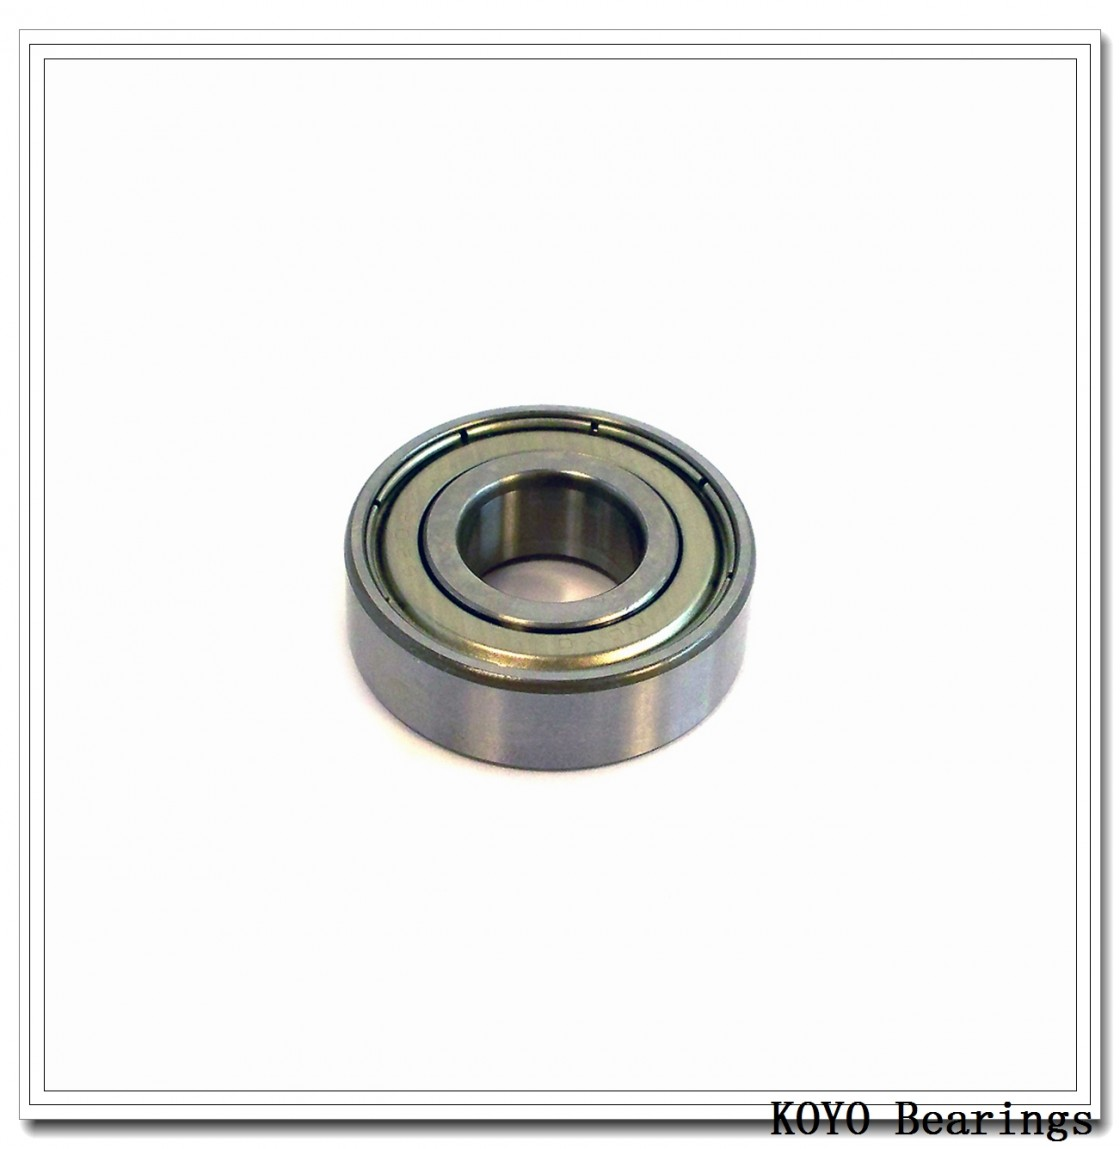 KOYO DC4864VW cylindrical roller bearings